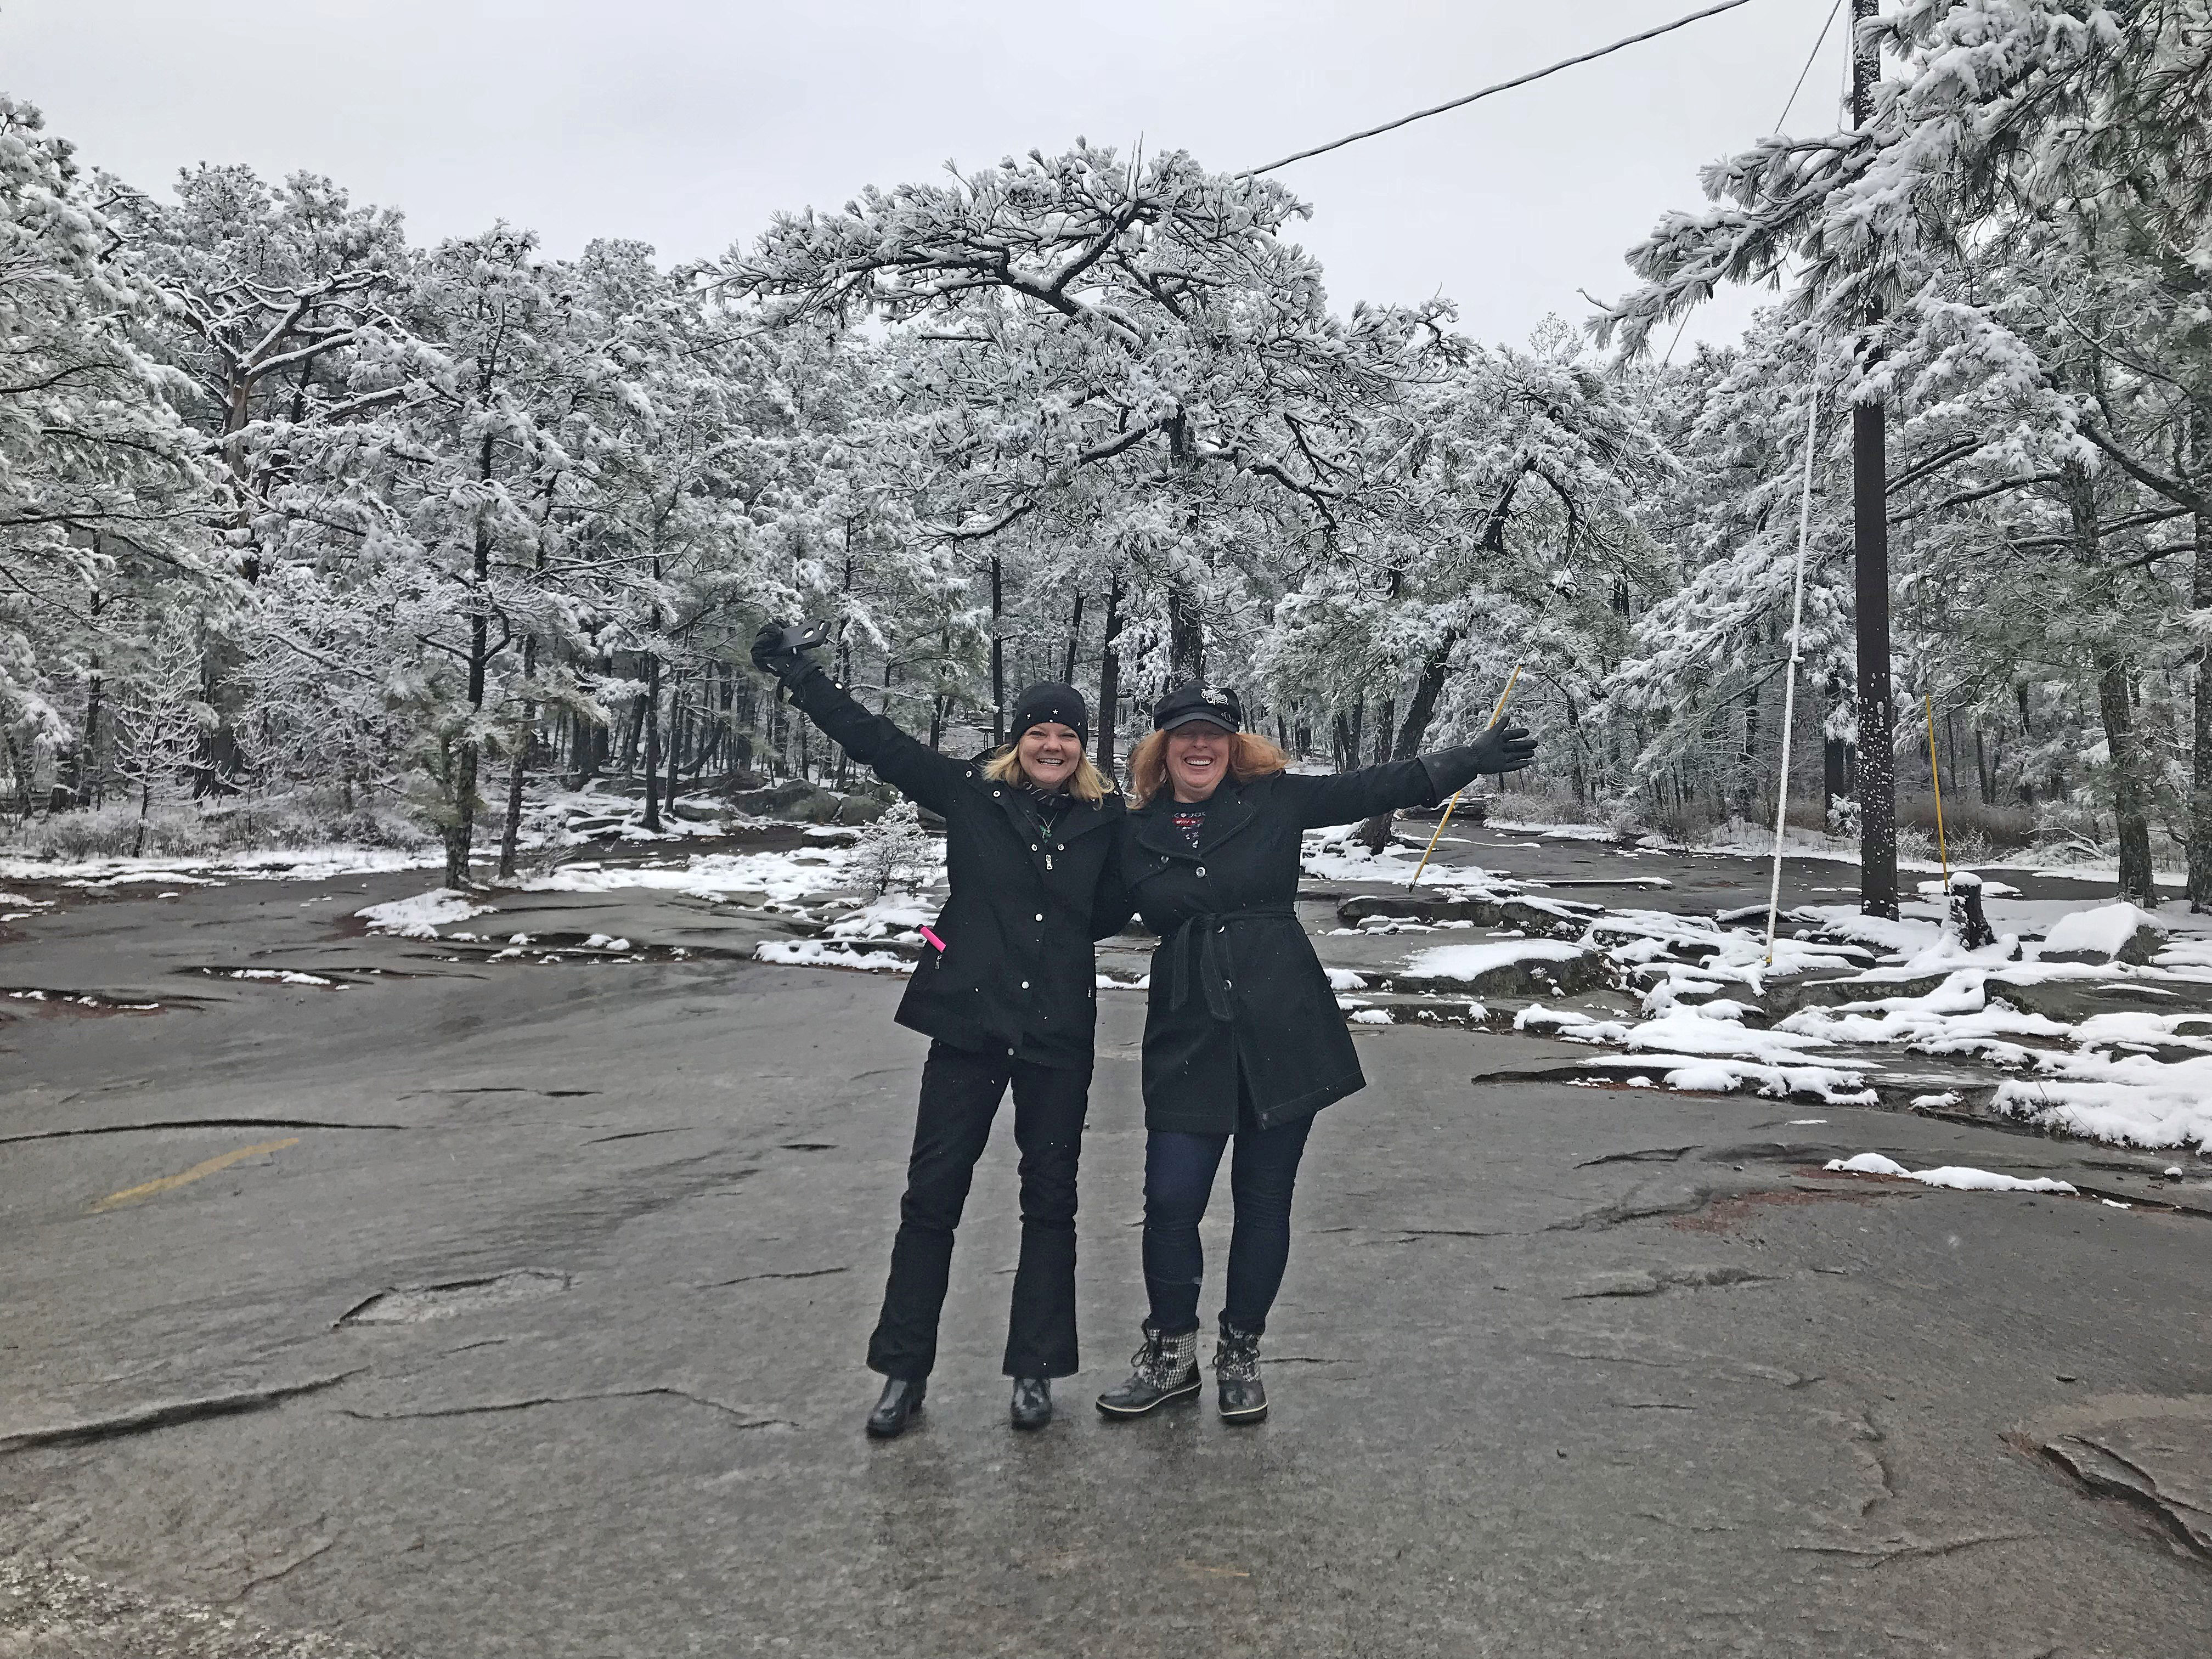 Stone Mountain residents Rhonda Wade and Rose Holland enjoying the snowfall on Stone Mountain on 12-09-17. Afterwards, they went to warm up at Cafe Jaya in Stone Mountain Village.